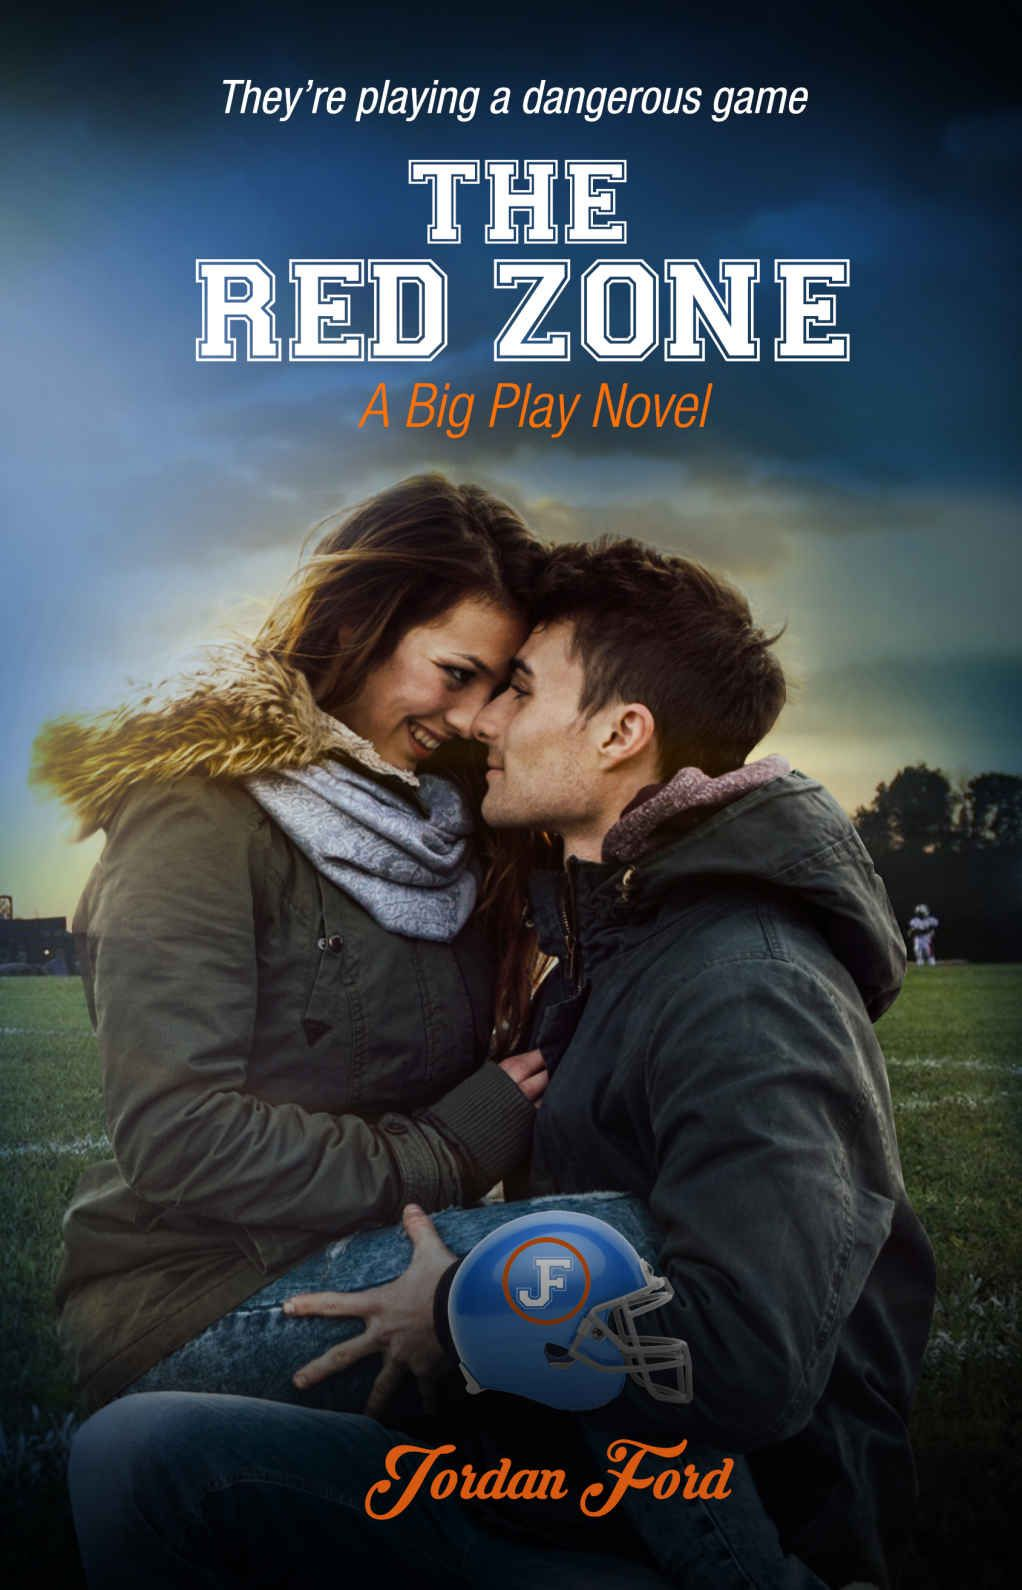 Amazon the red zone a big play novel book 2 ebook jordan amazon the red zone a big play novel book 2 ebook fandeluxe PDF